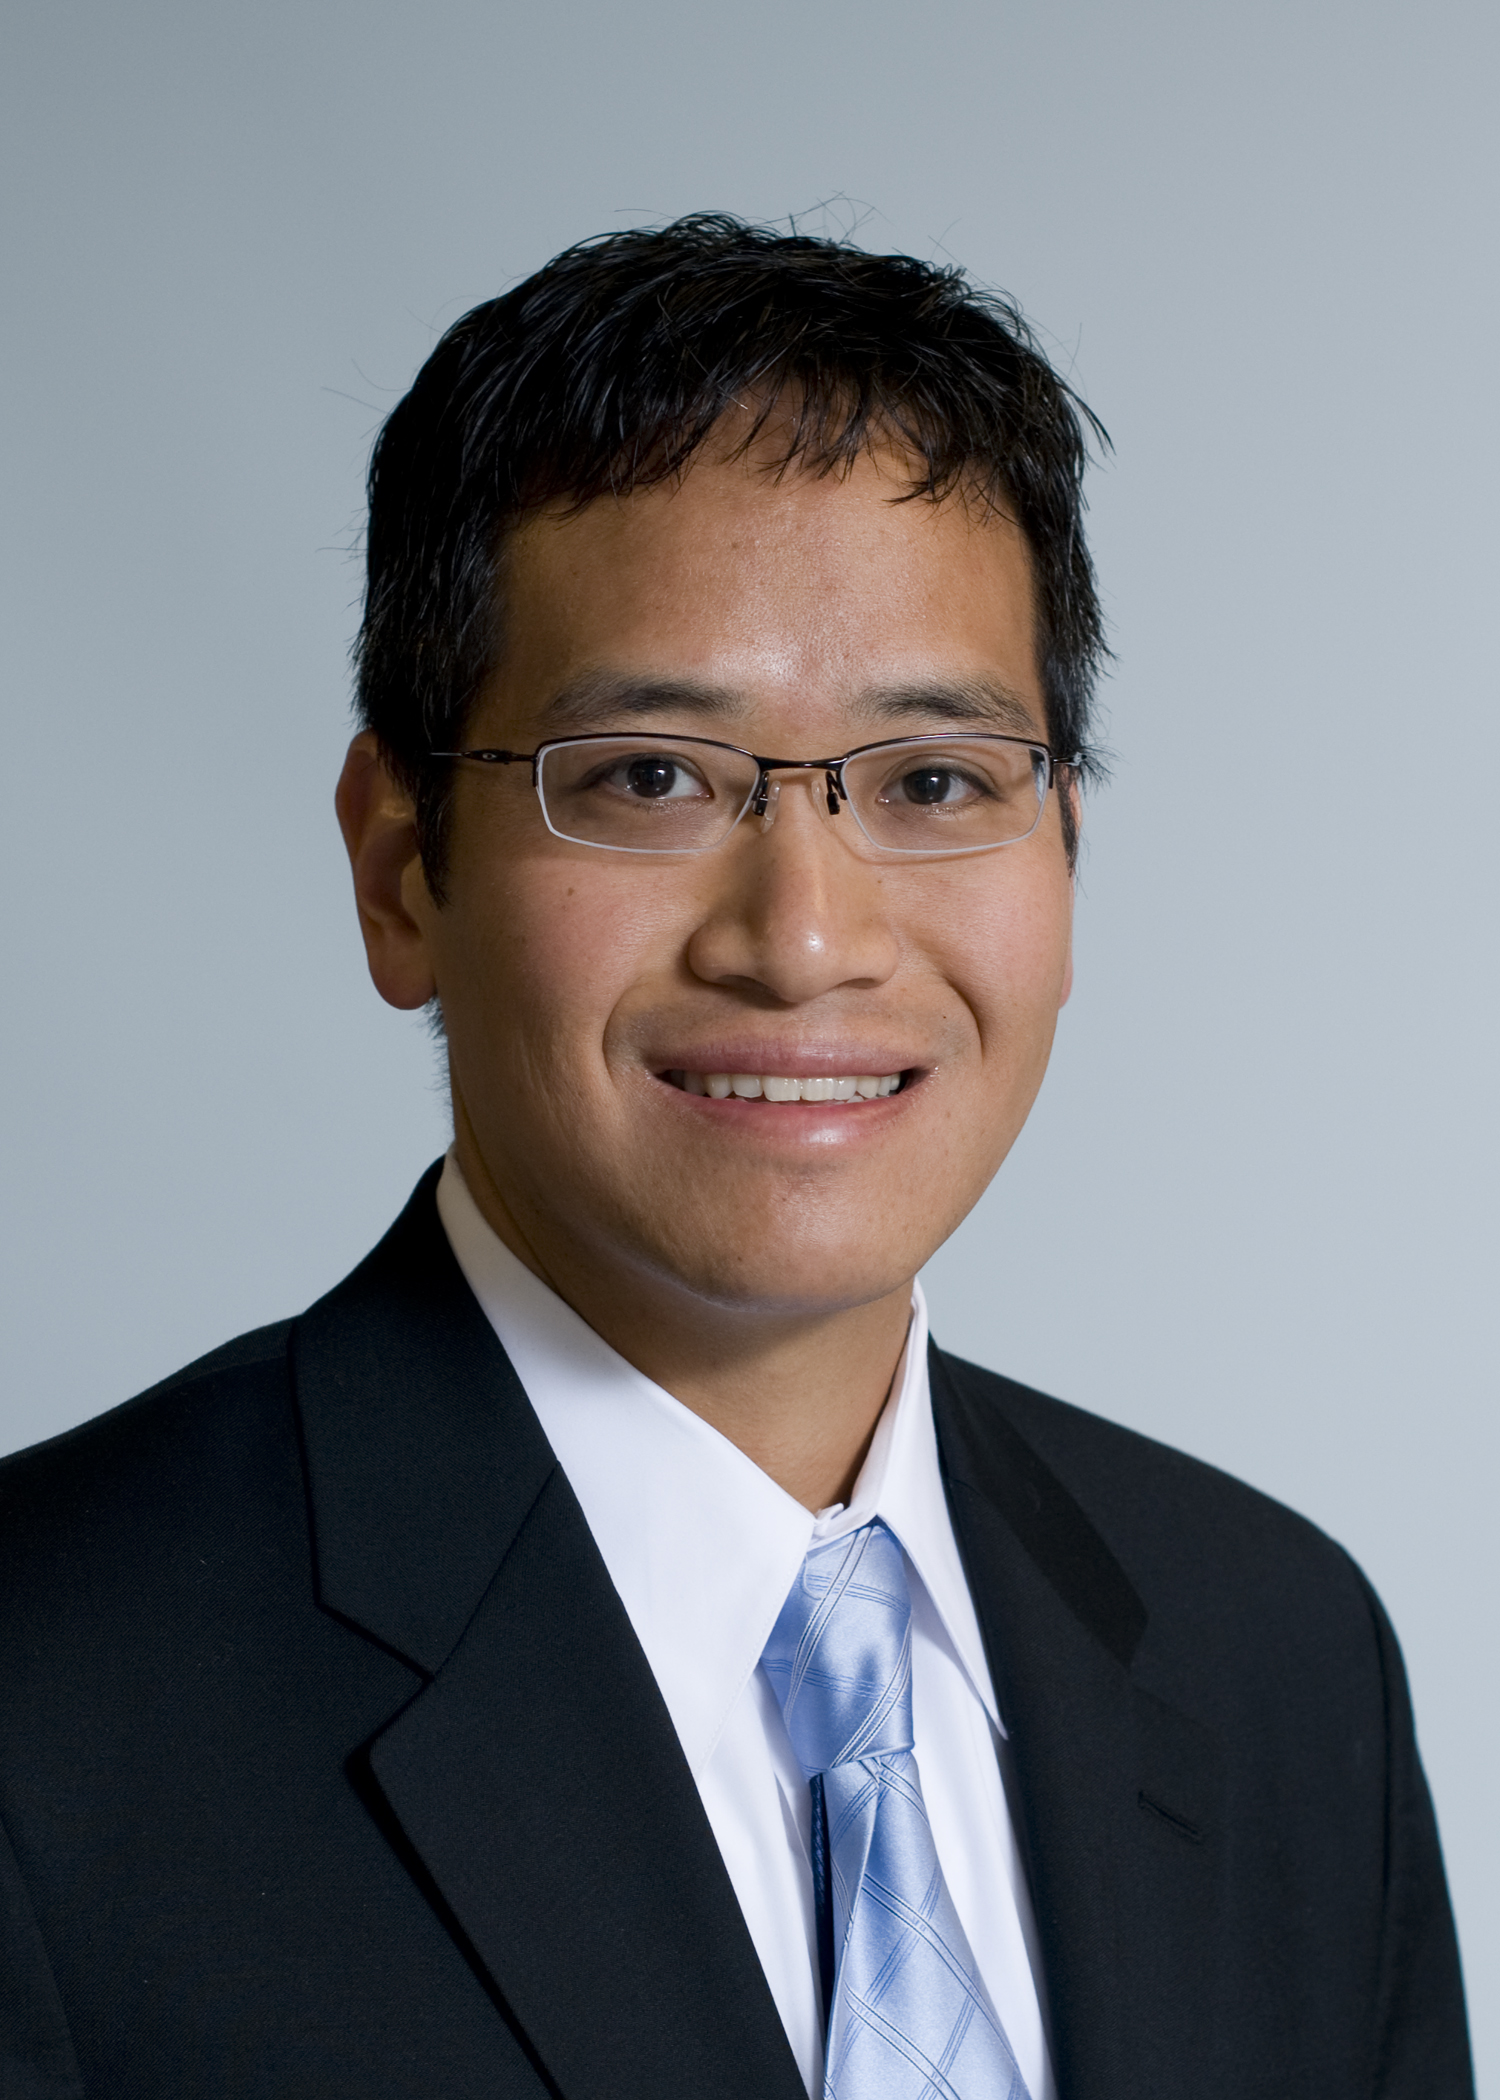 Dr. Theodore Hong